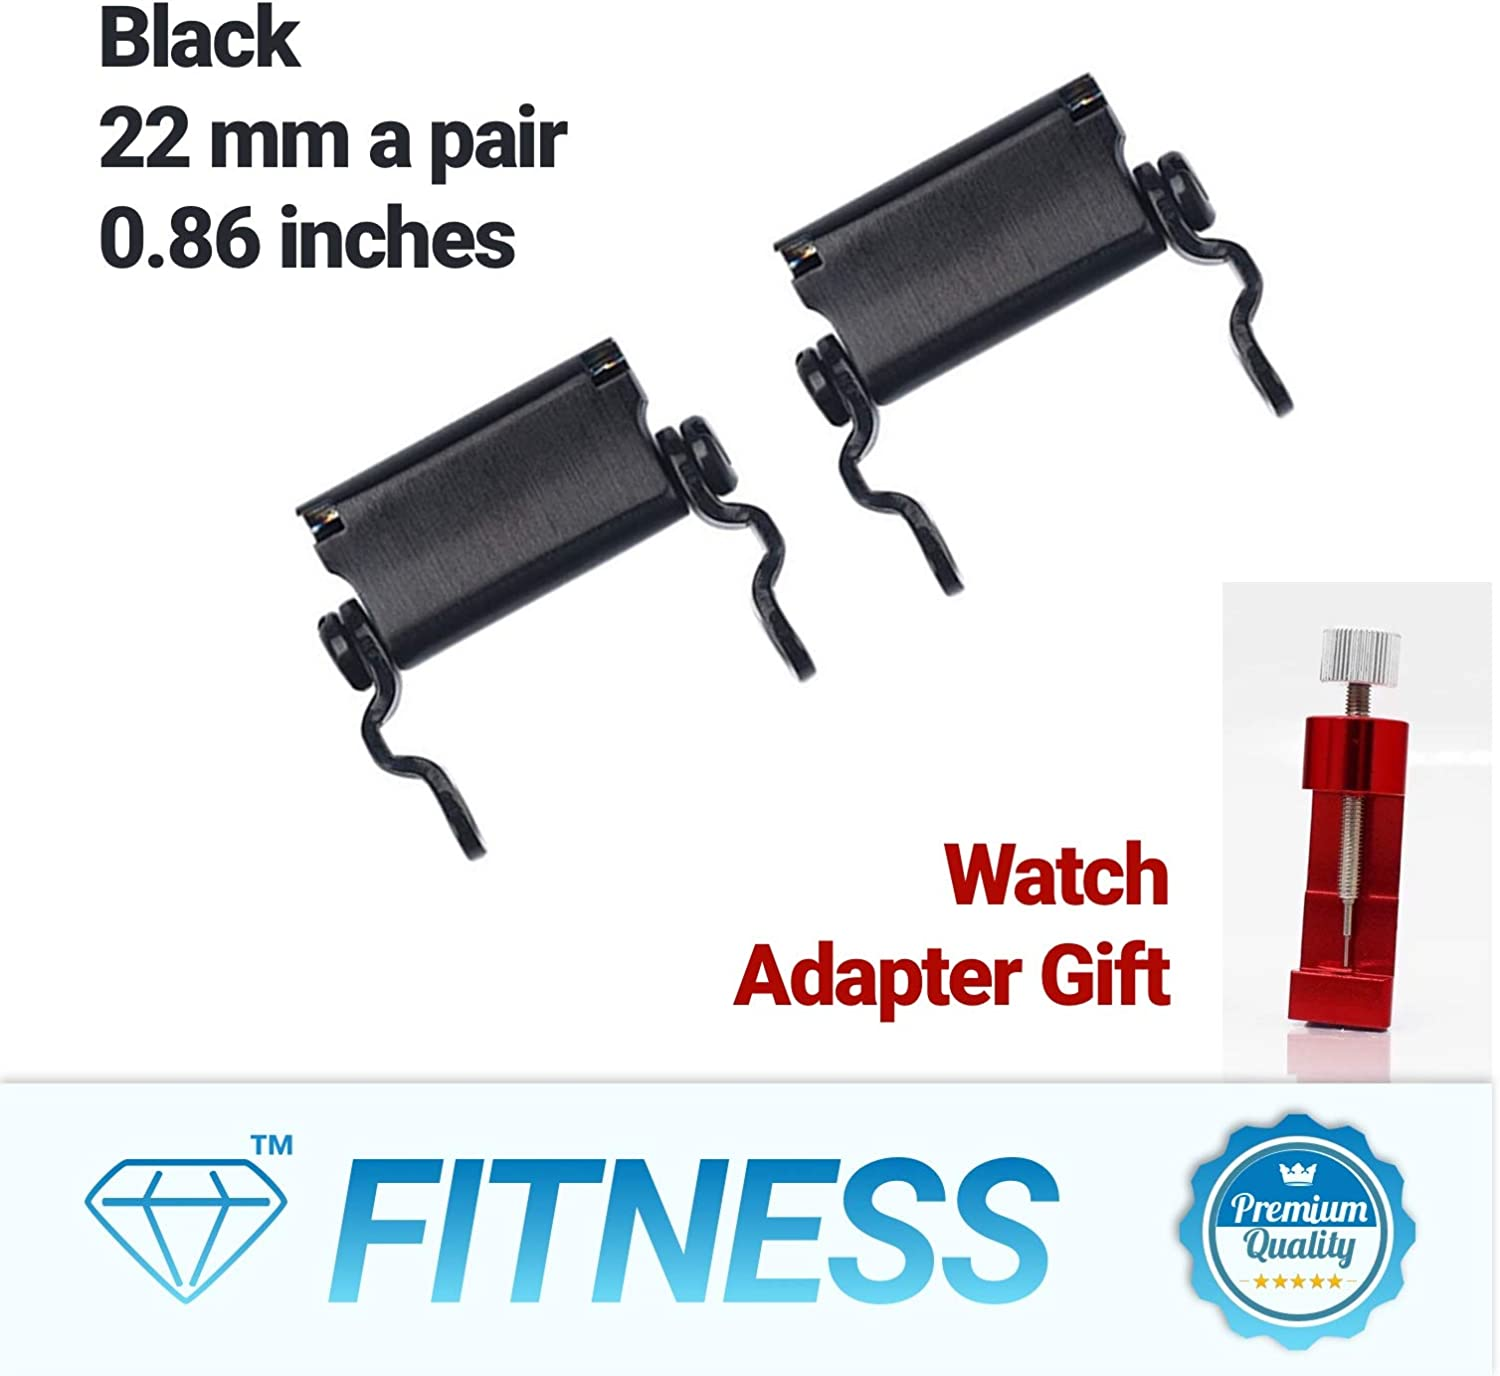 Diamond Survival Multitools Bracelet Adapter for Watch, A Pair of Black Lug 22mm 0.86 – Only Pair of Links and Gift Watch Adapter